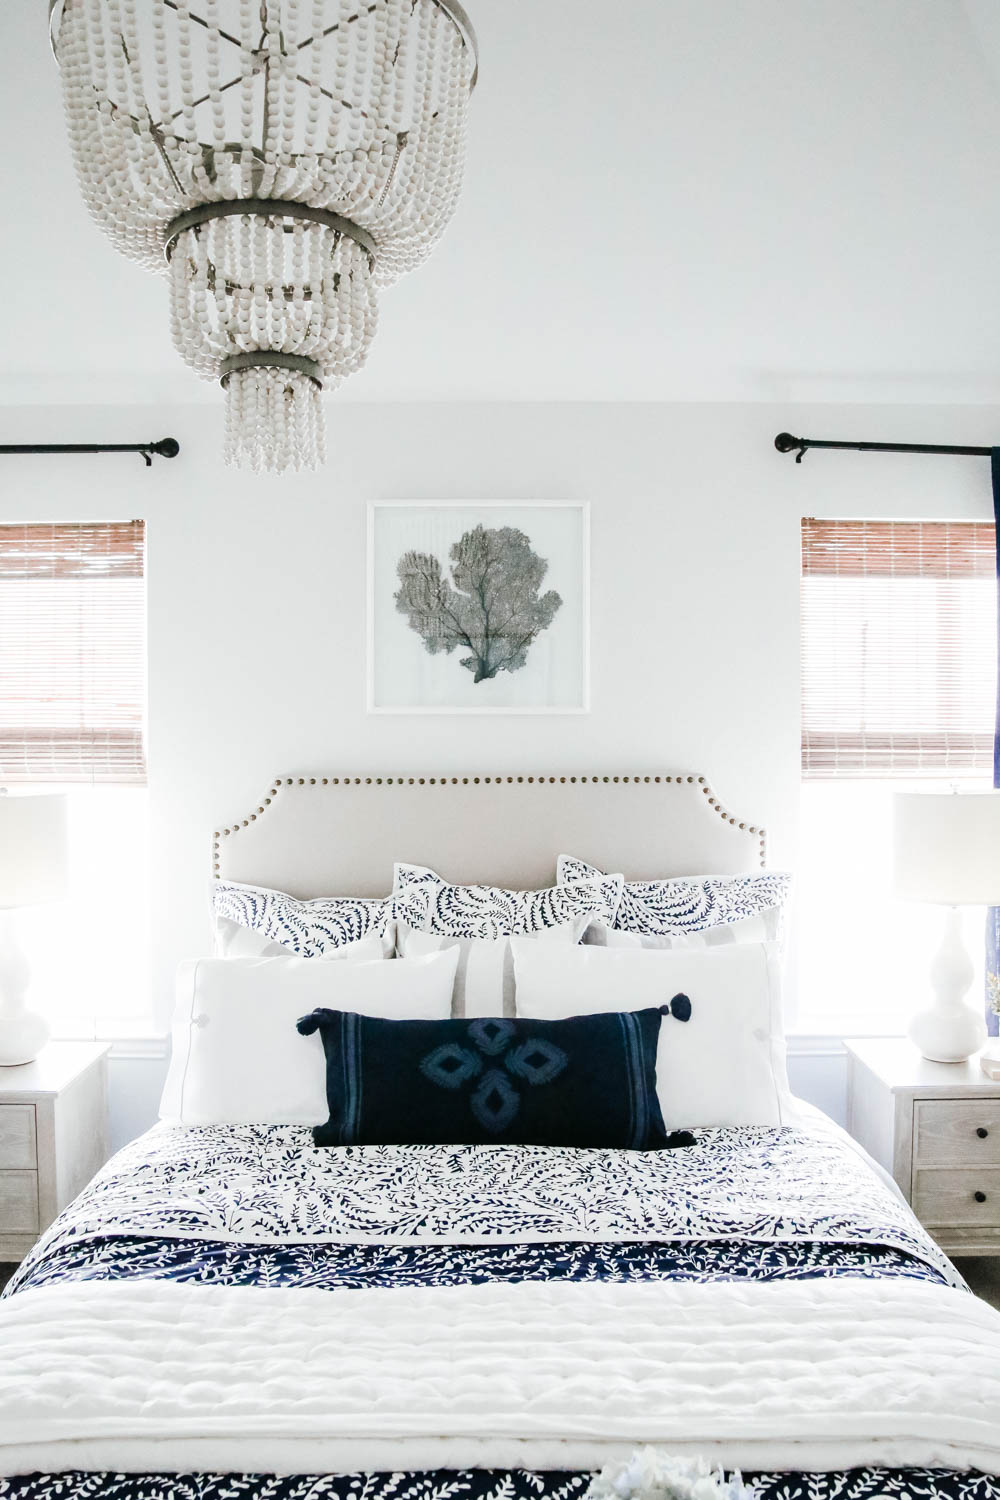 Use layers of bedding to create a cozy guest room. #ABlissfulNest #guestroom #guestbedroom